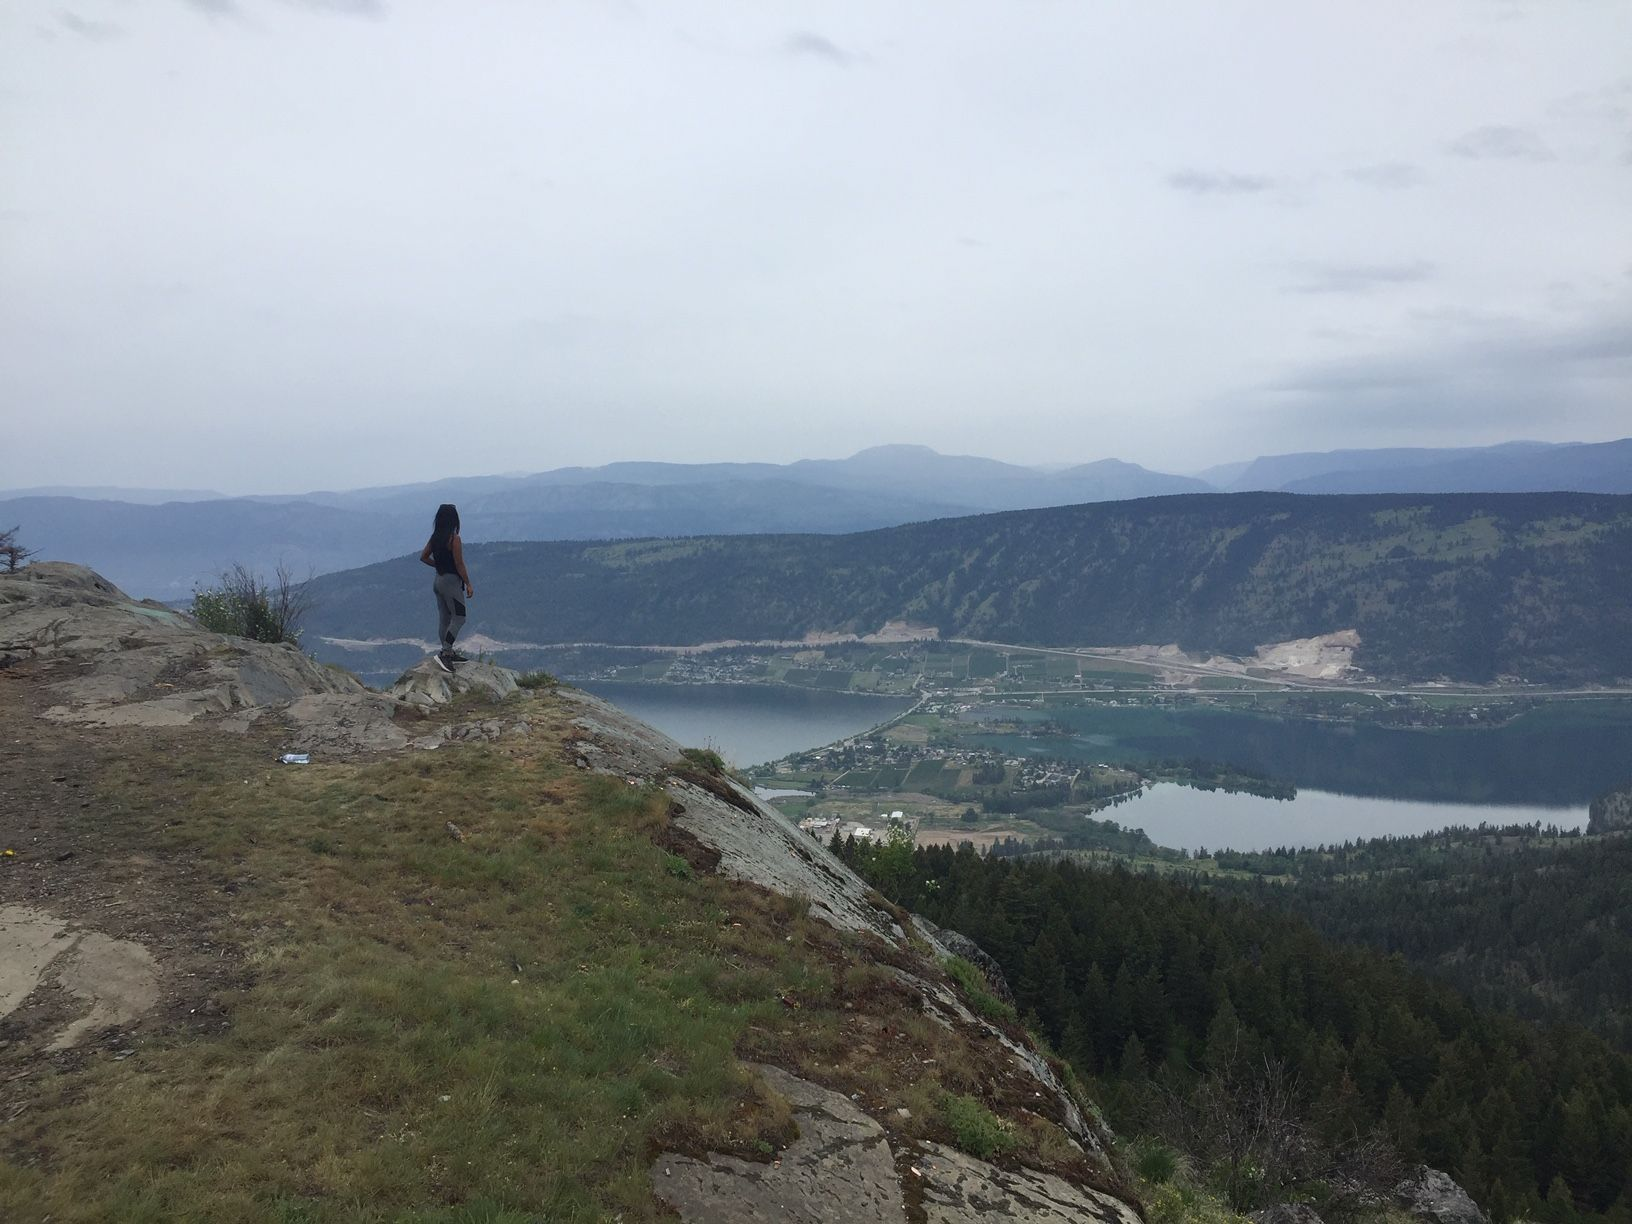 oyama-lookout-okanagan-british-columbia.jpg